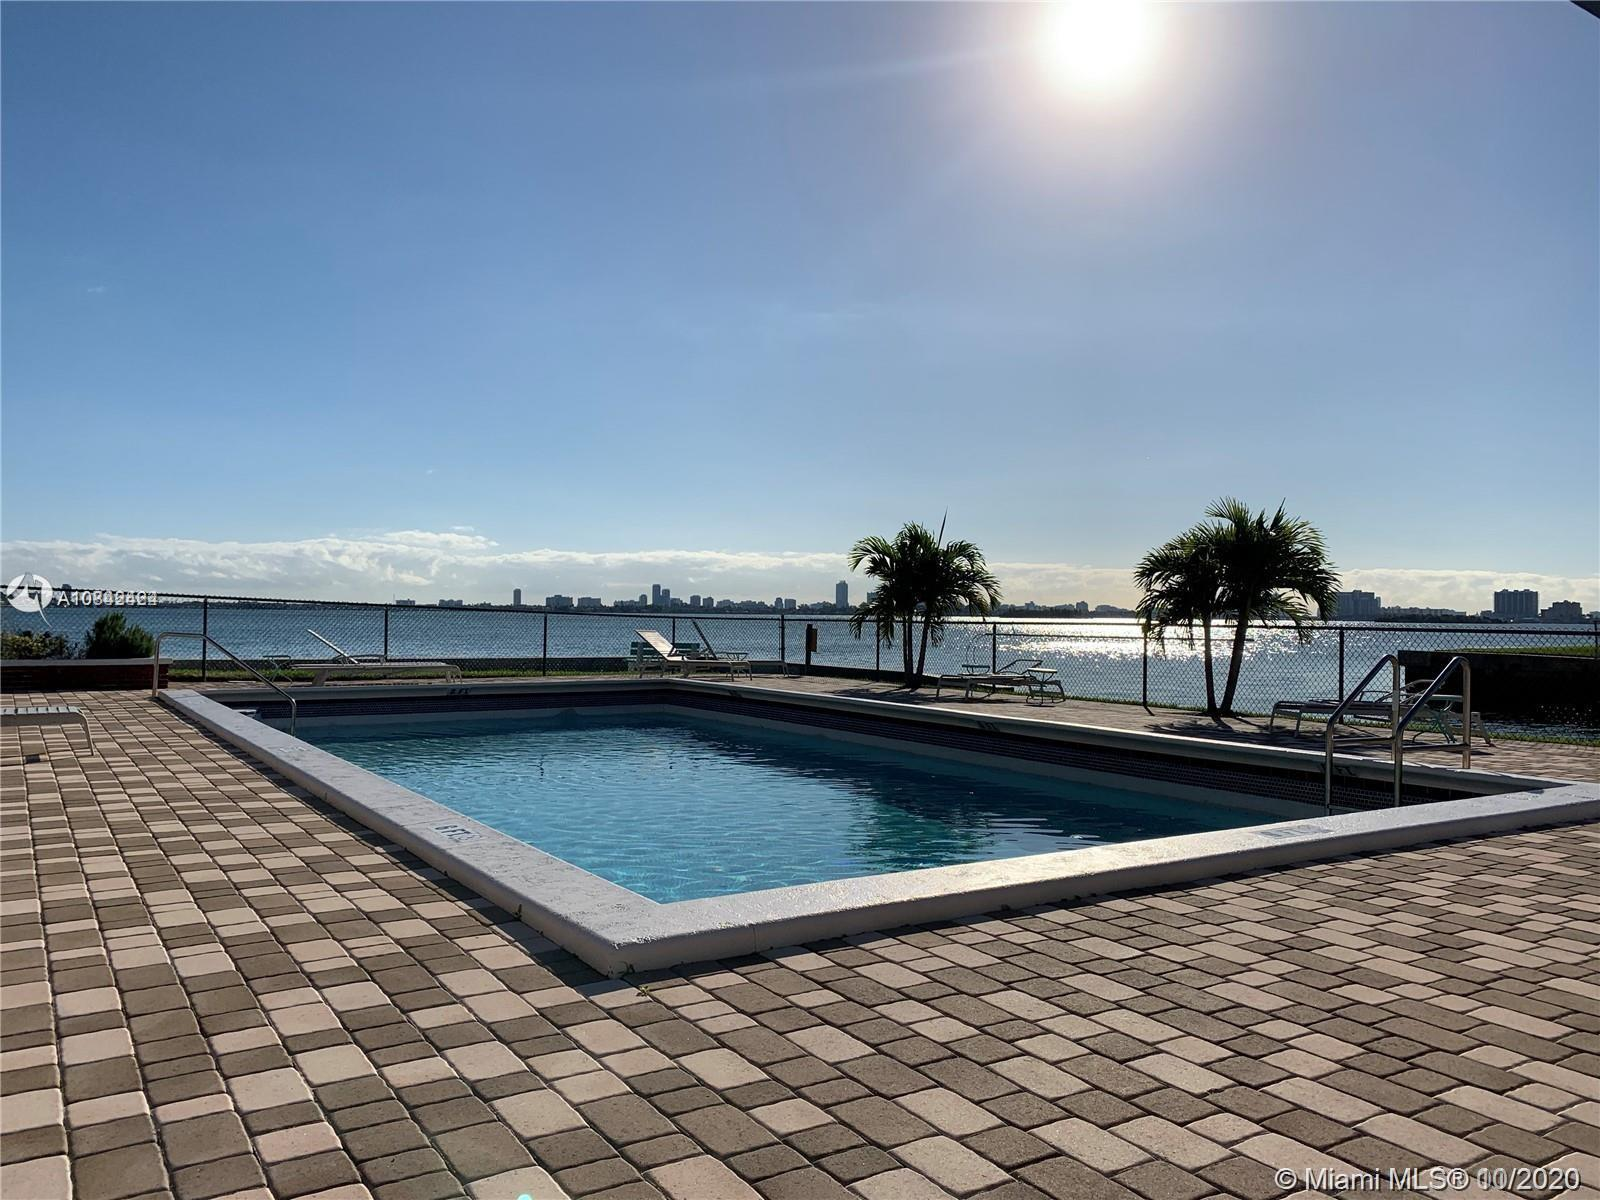 ALWAYS IN HIGH DEMAND, THE SHORES CONDO OFFERS SAFE AND SECURE LIVING IN MIAMI SHORES. THIS BAY-FRON